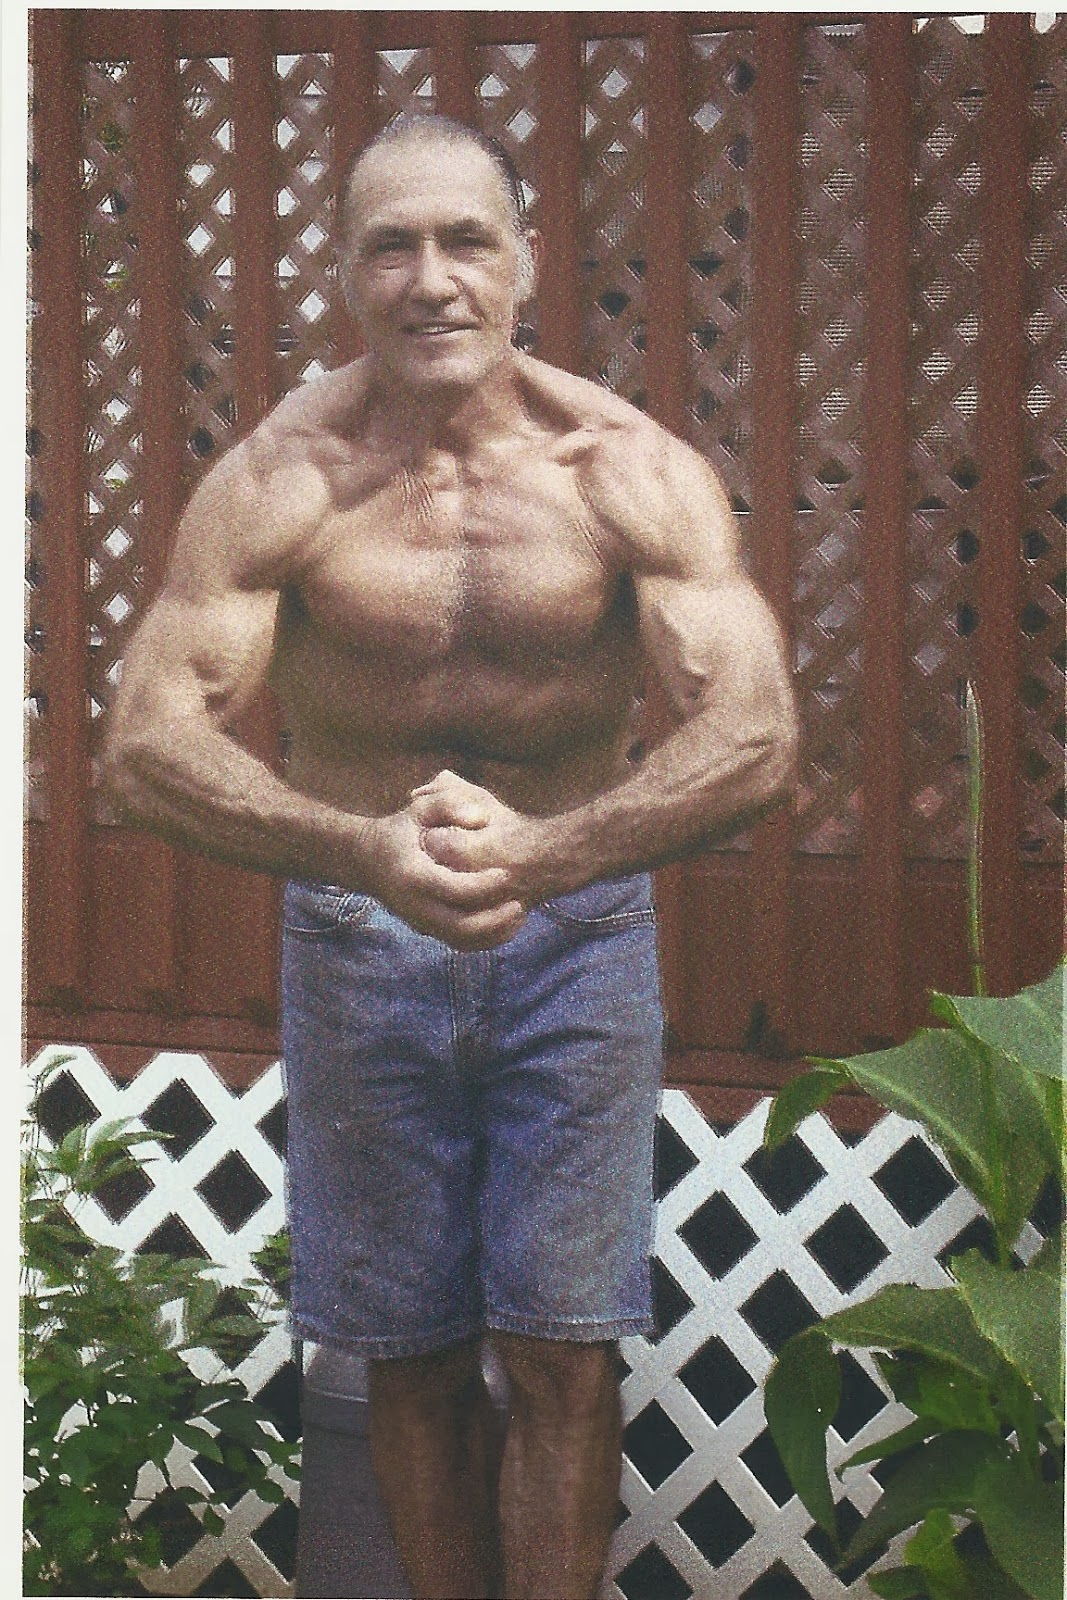 glen gardner mature personals Join our glen gardner dating and glen gardner personals website for free today find naked women from glen gardner seeking sex, passion and love we have millions of naked women from glen.